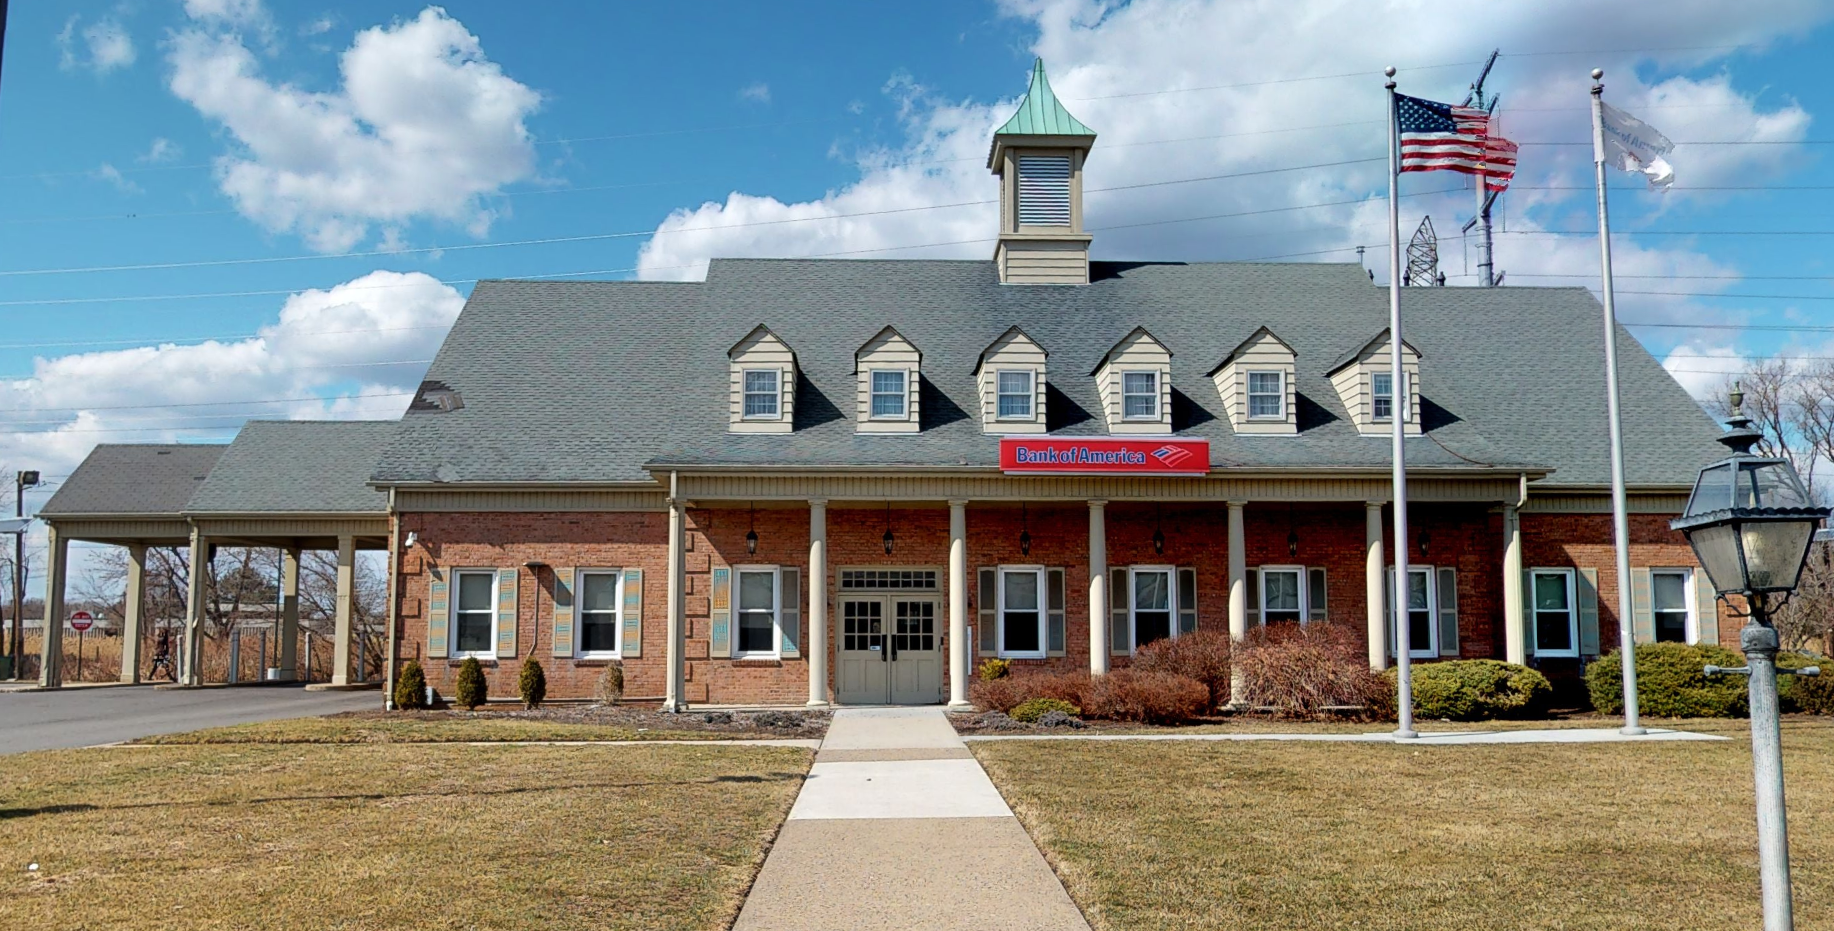 Bank of America financial center with drive-thru ATM | 597 Passaic Ave, West Caldwell, NJ 07006